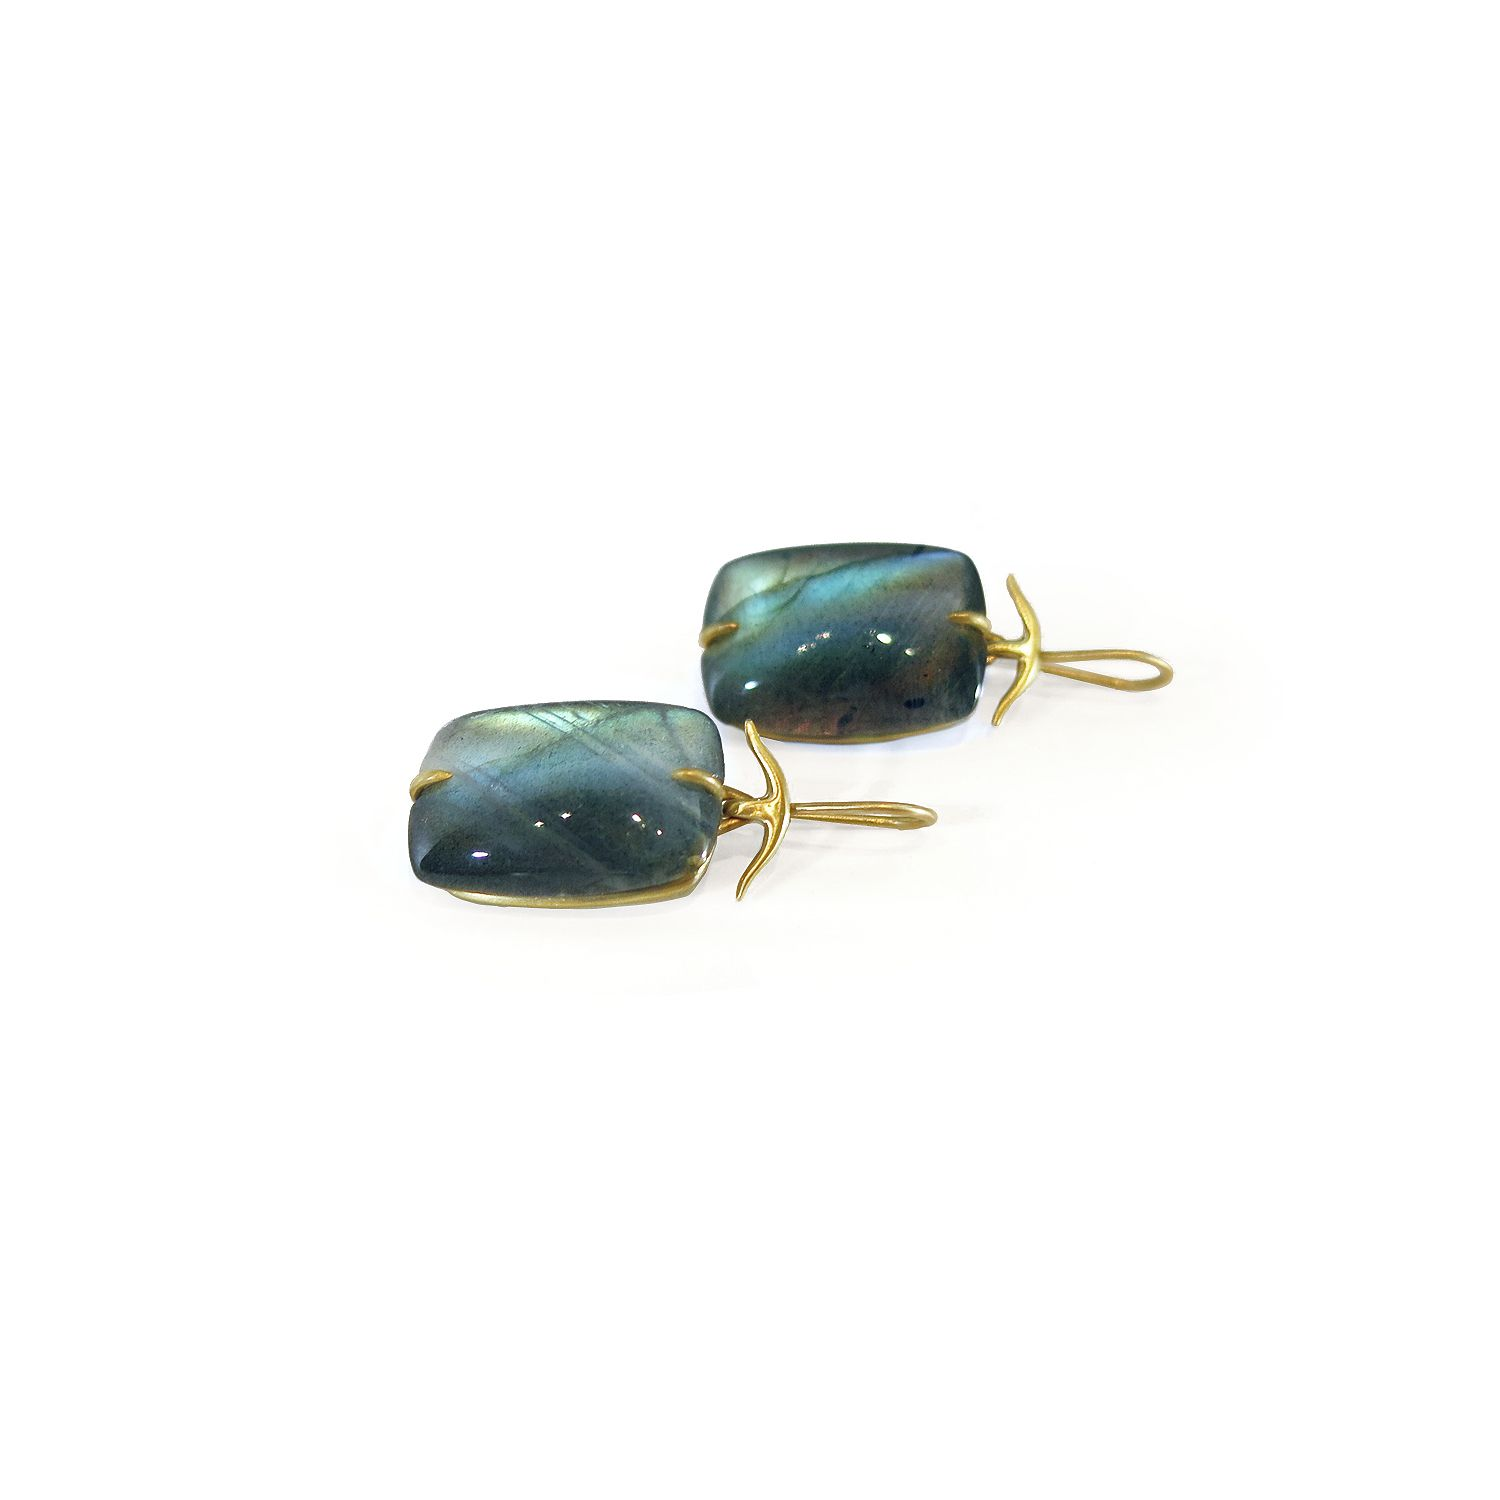 229ebaeec Gabriella Kiss 18k yellow gold & labradorite pillow earrings.  #GabriellaKiss #jewelry #earrings #labradorite #blue #jewellery #heirlooms # 18K #gold # ...